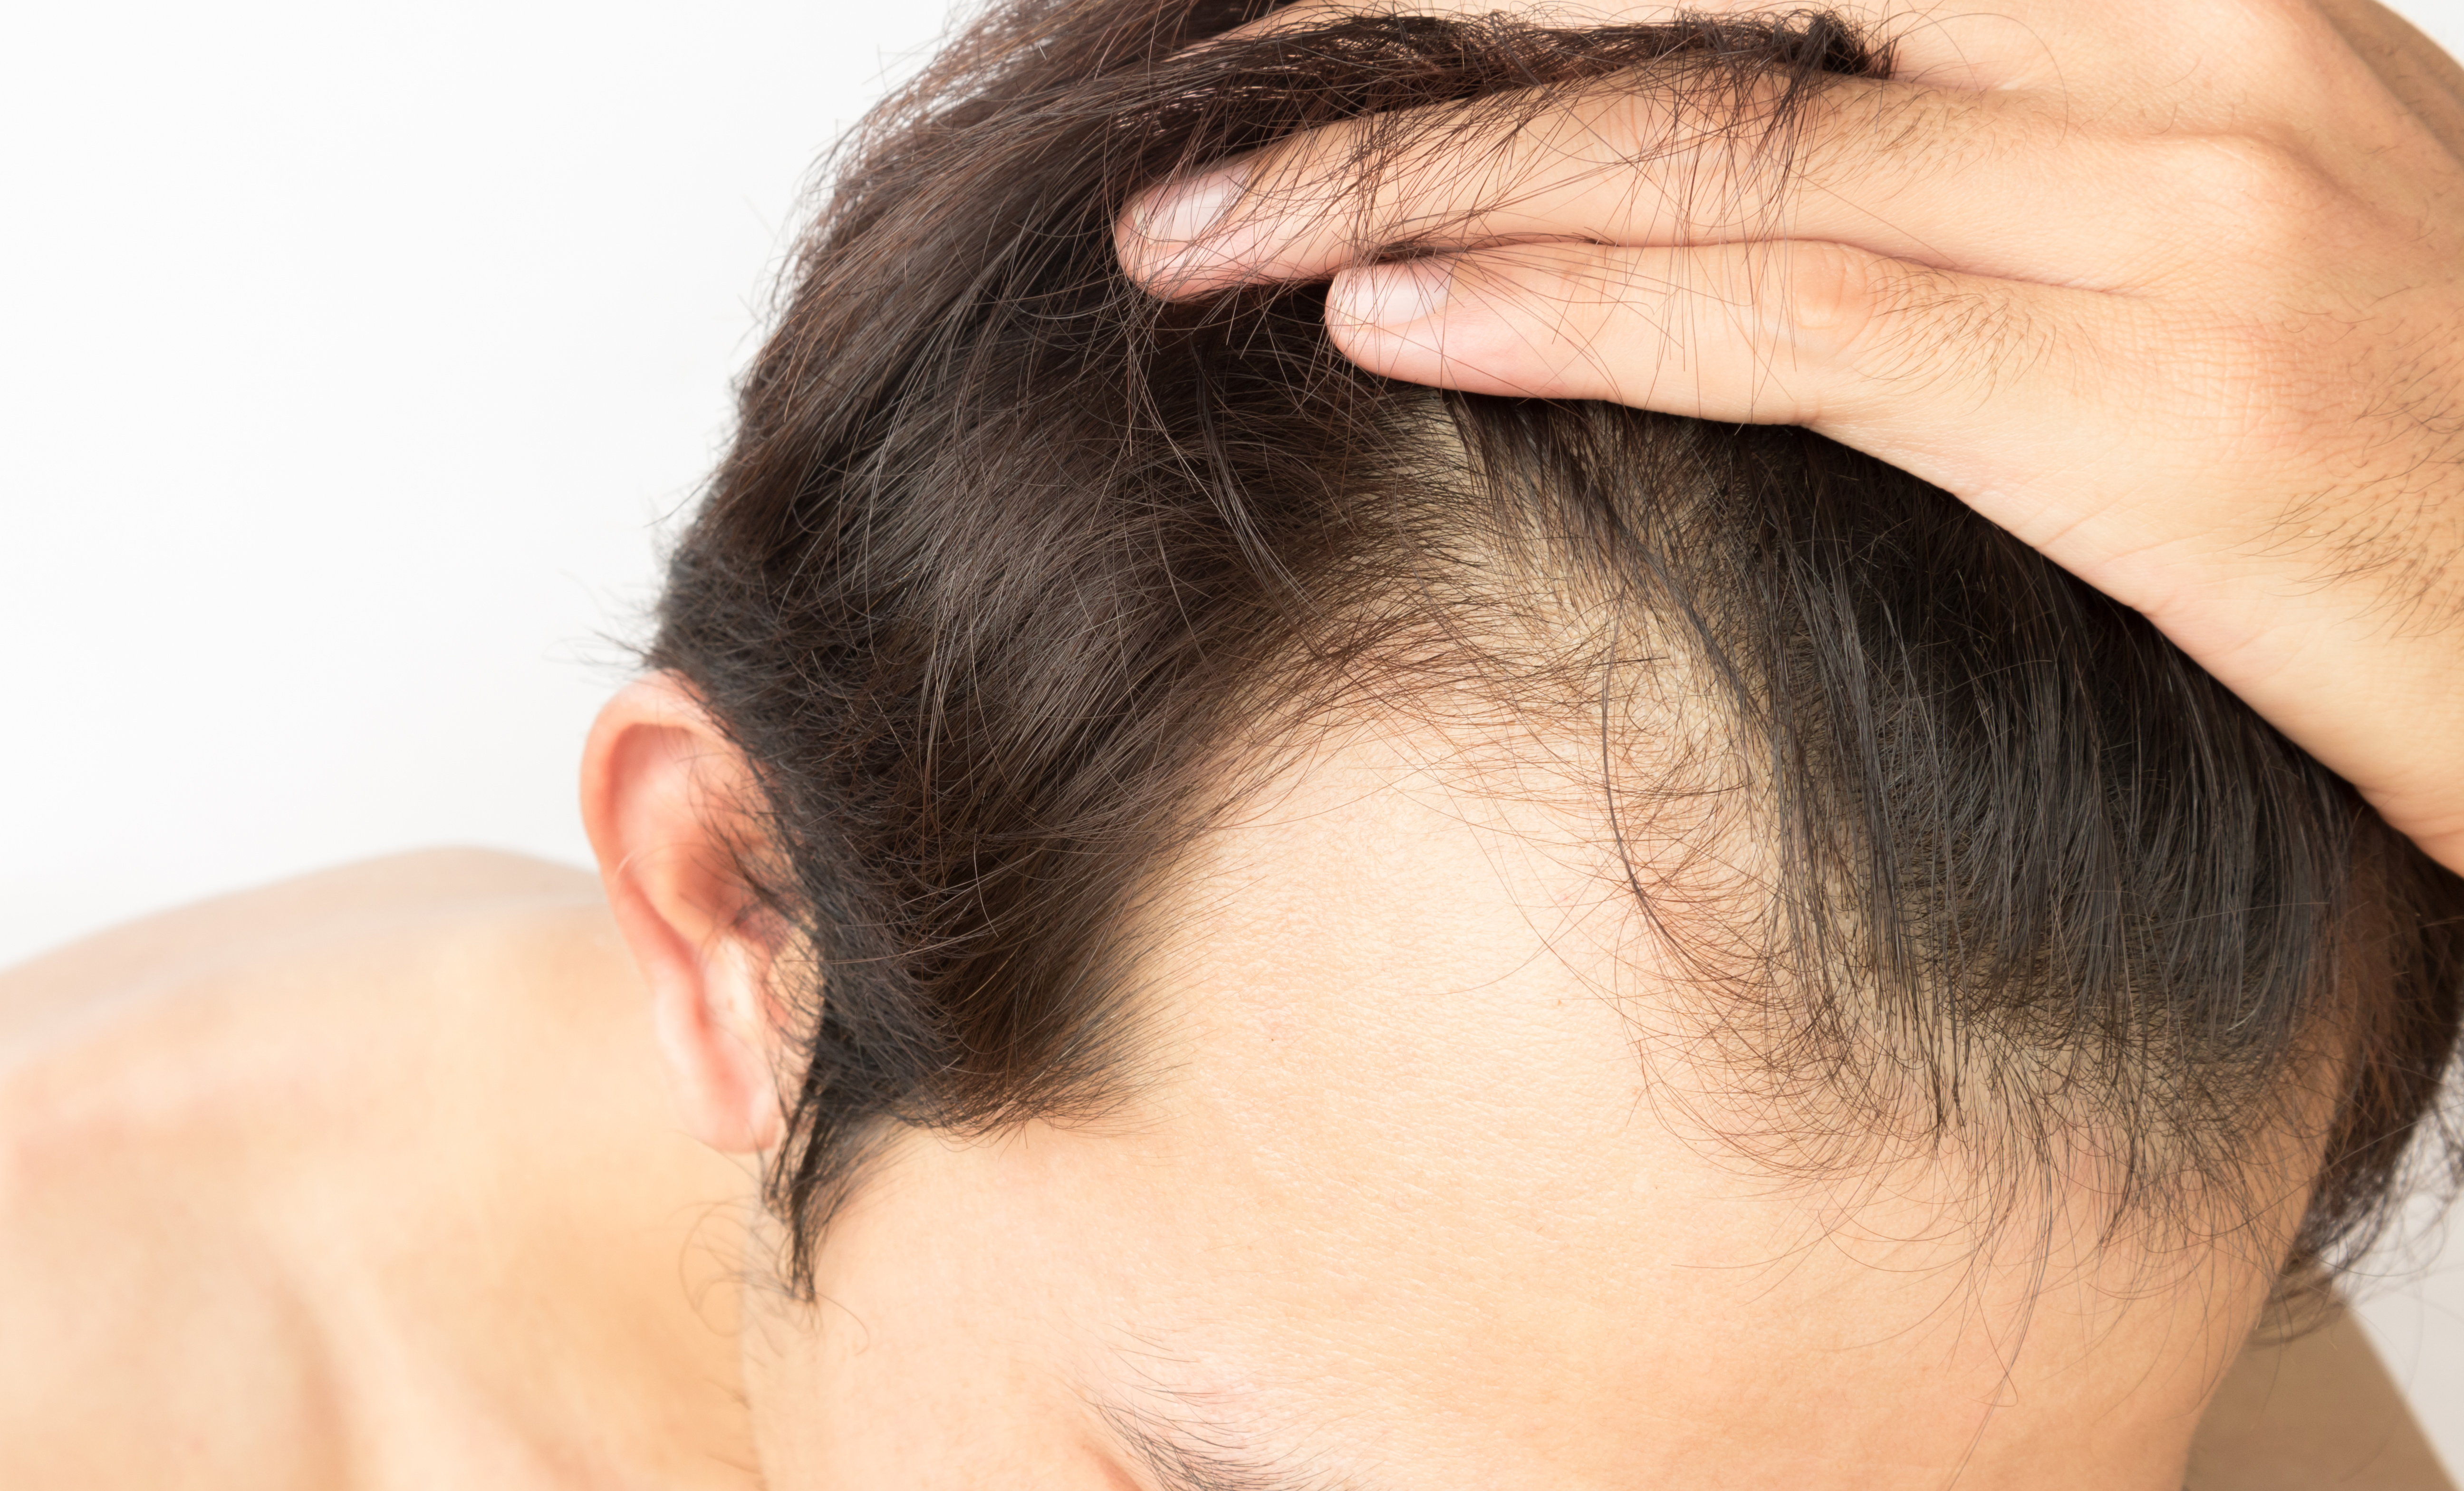 fut or fue hair transplant treatment options at Farjo Hair Institute